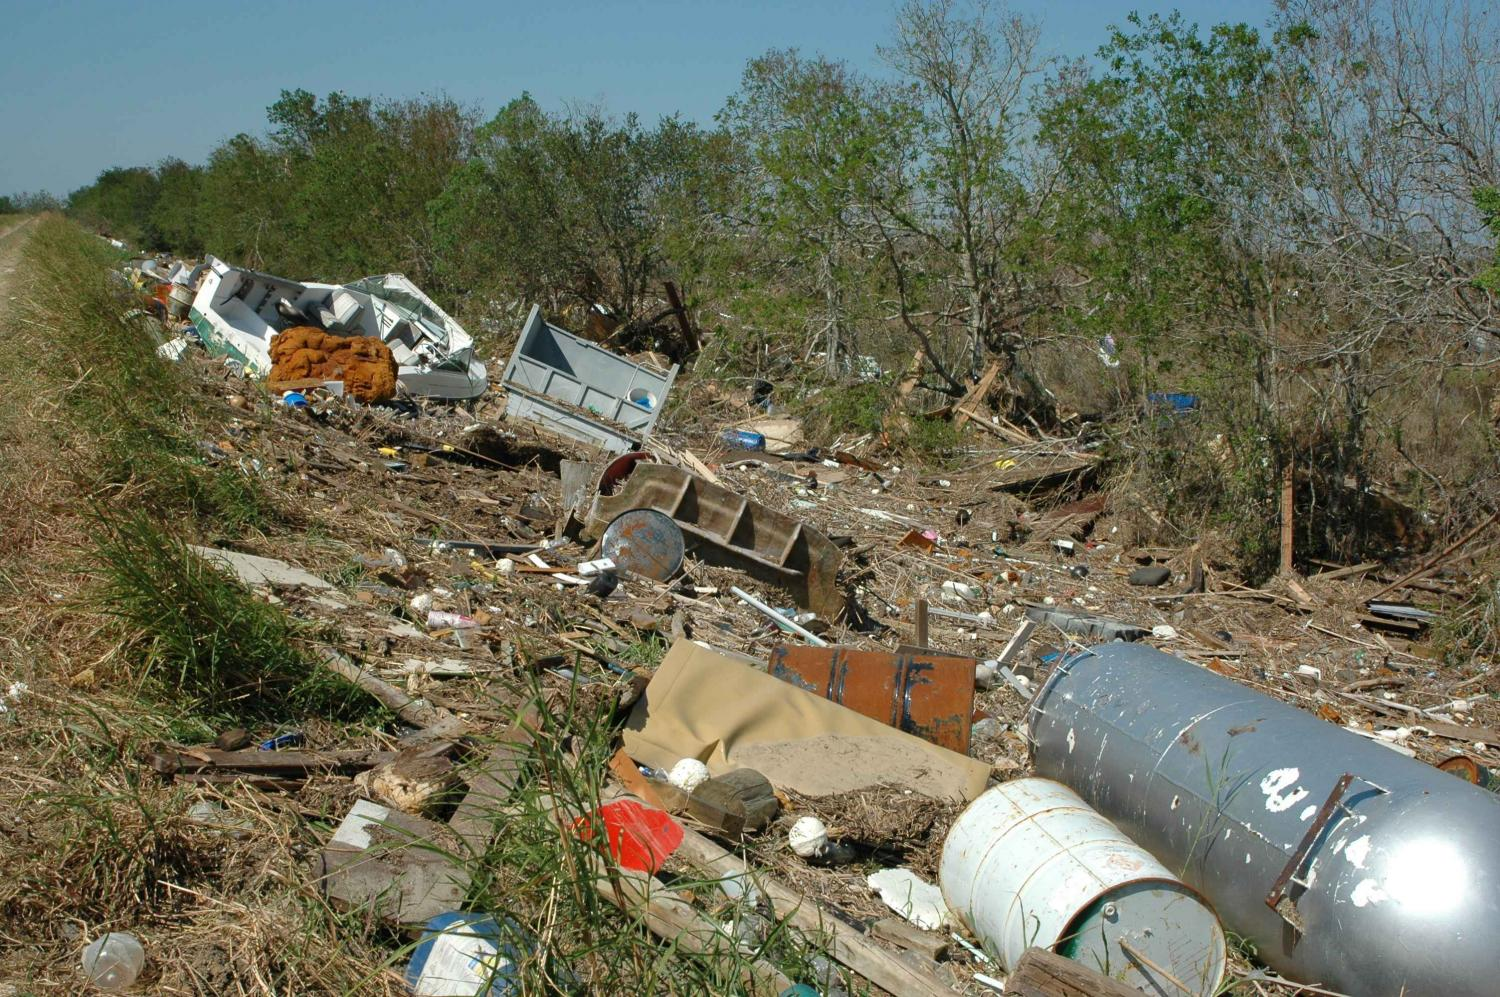 Courtesy of U.S Fish and Wildlife Services. A considerable amount of debris has been left behind by hurricanes.